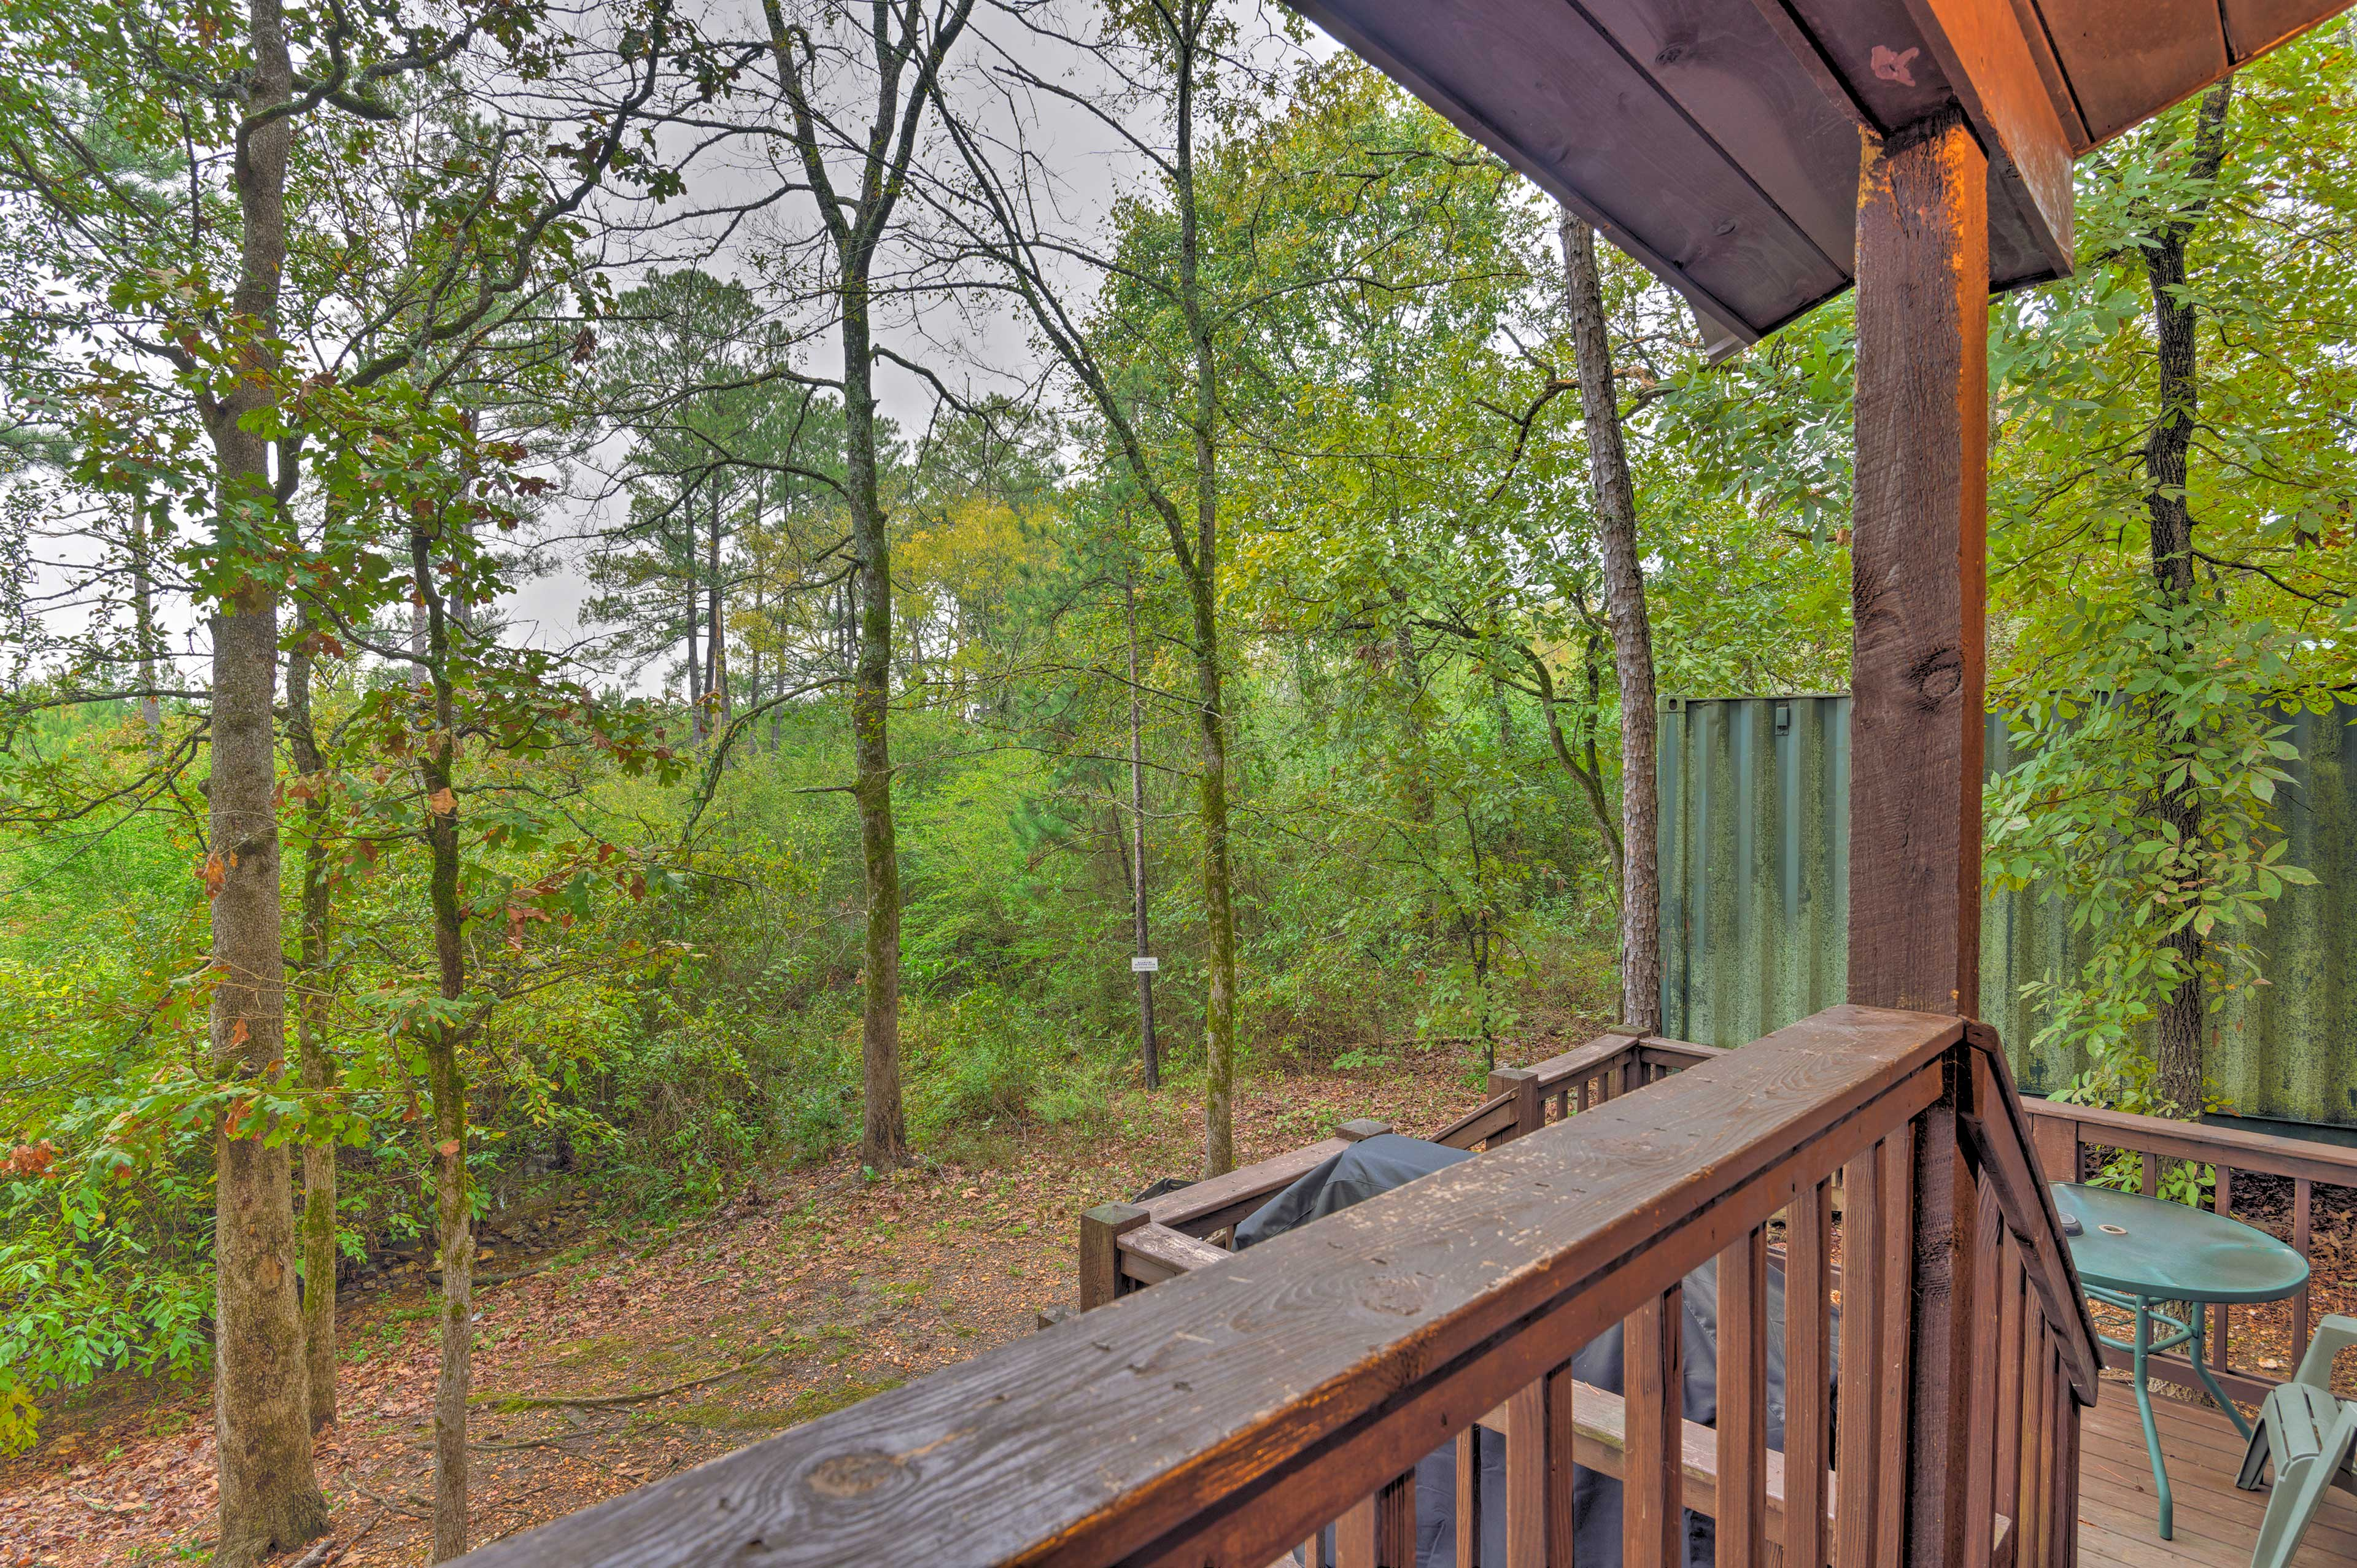 The deck features a gas grill and an outdoor dining table.